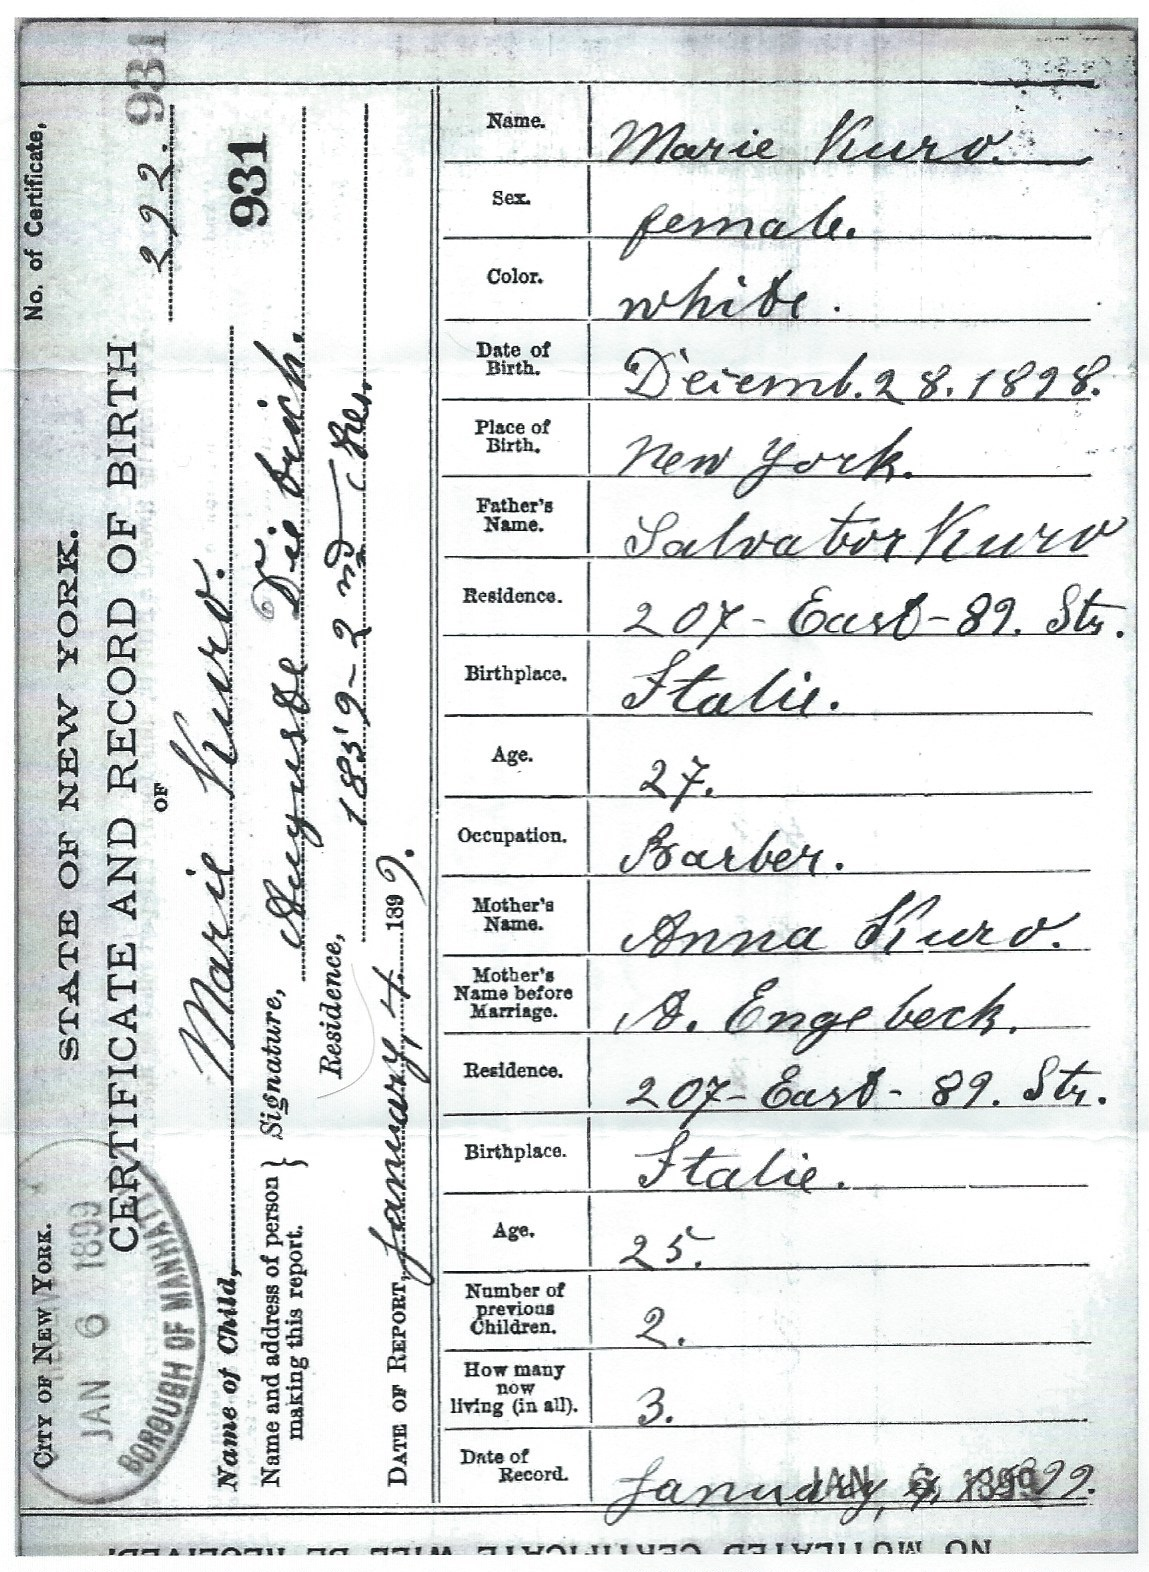 Jeannettes take on life birth report marie cecillia curro b marie kuro in the new york new york extracted birth index 1878 1909 aiddatafo Images